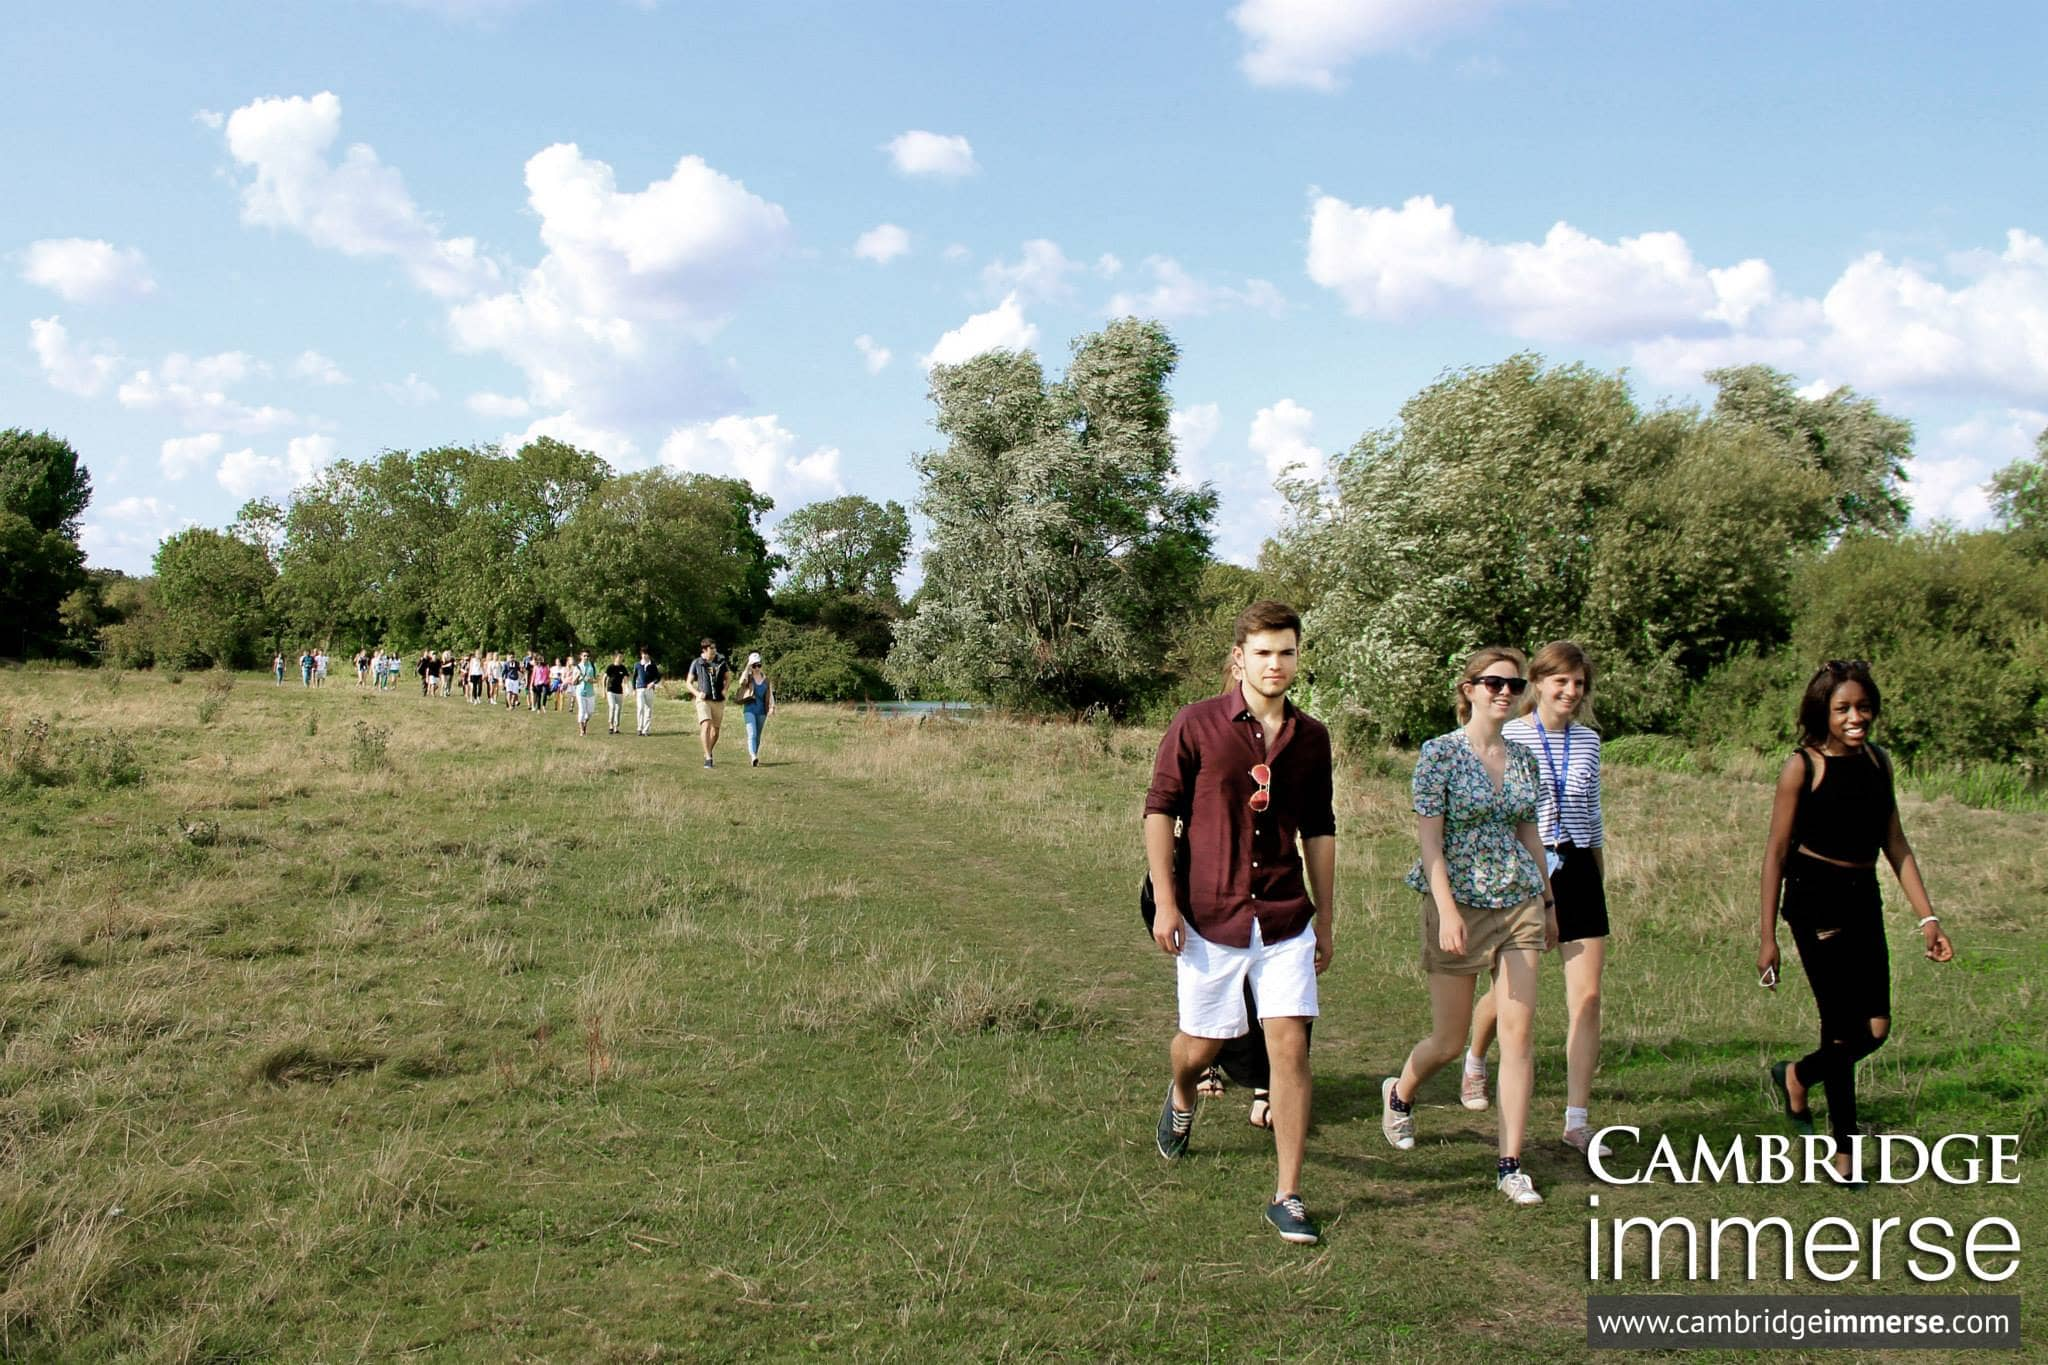 Session 1 Walk to Grantchester